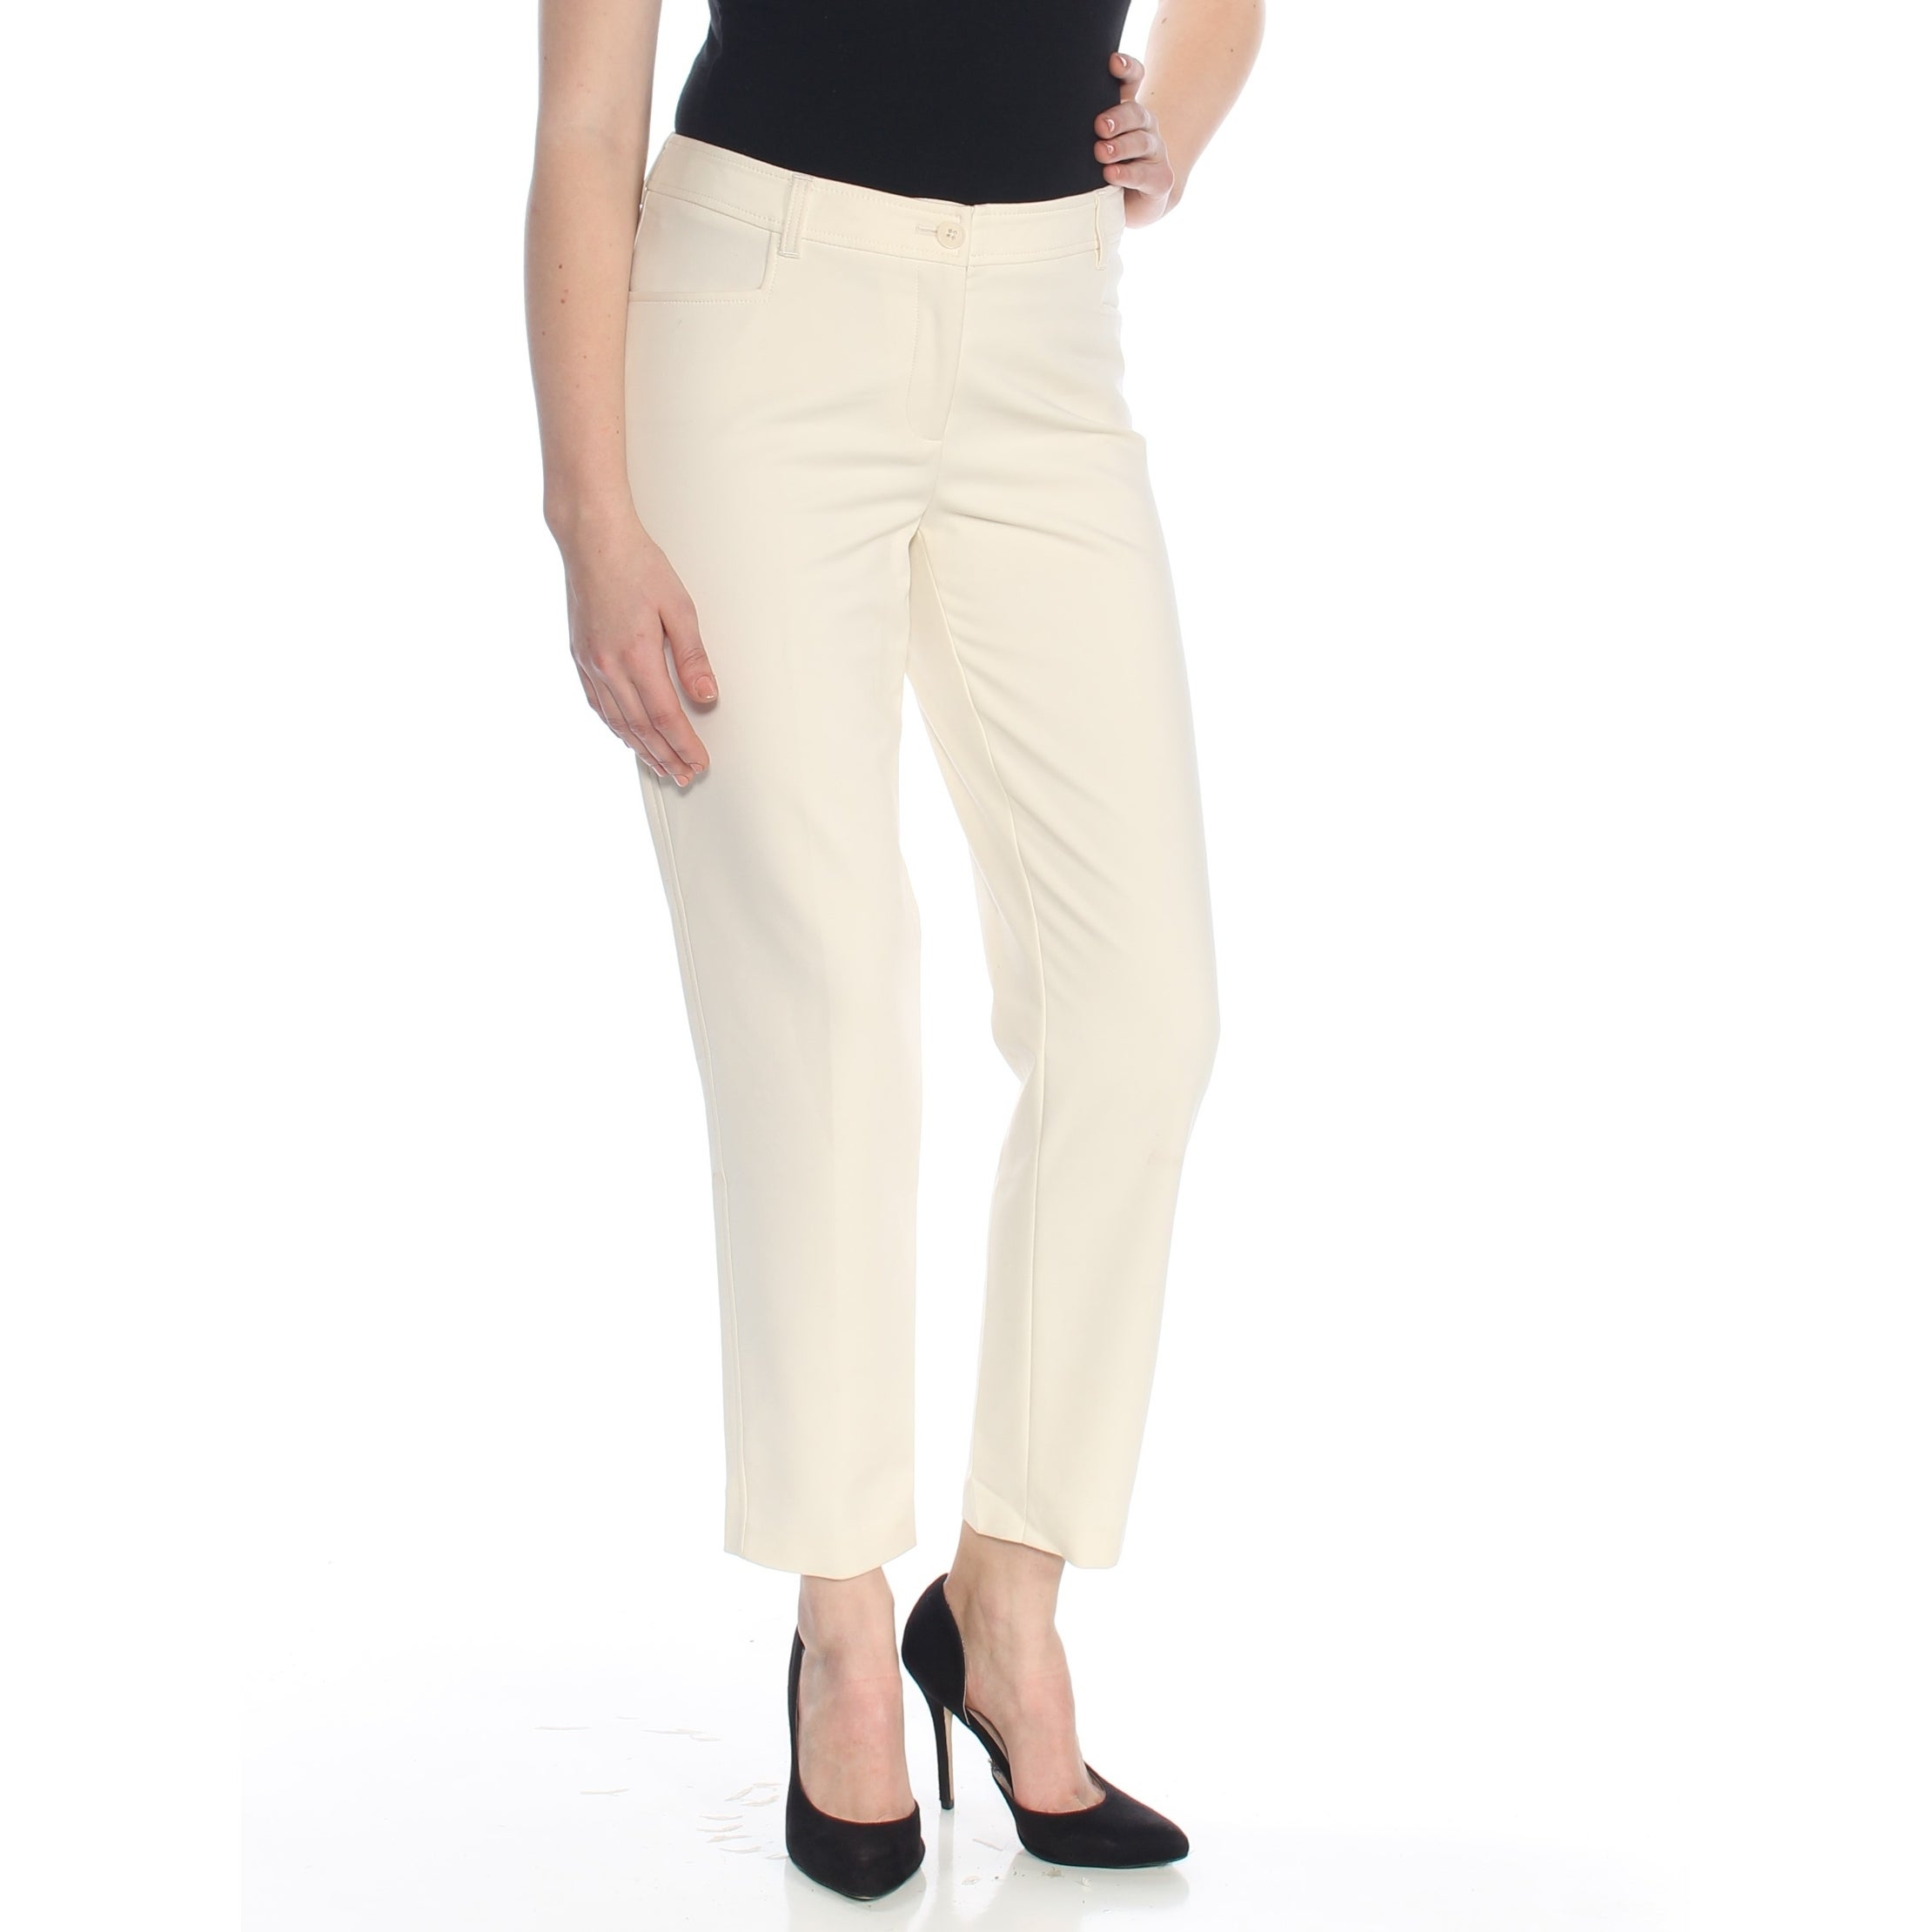 3e20ec4a399 Anne Klein Pants | Find Great Women's Clothing Deals Shopping at Overstock